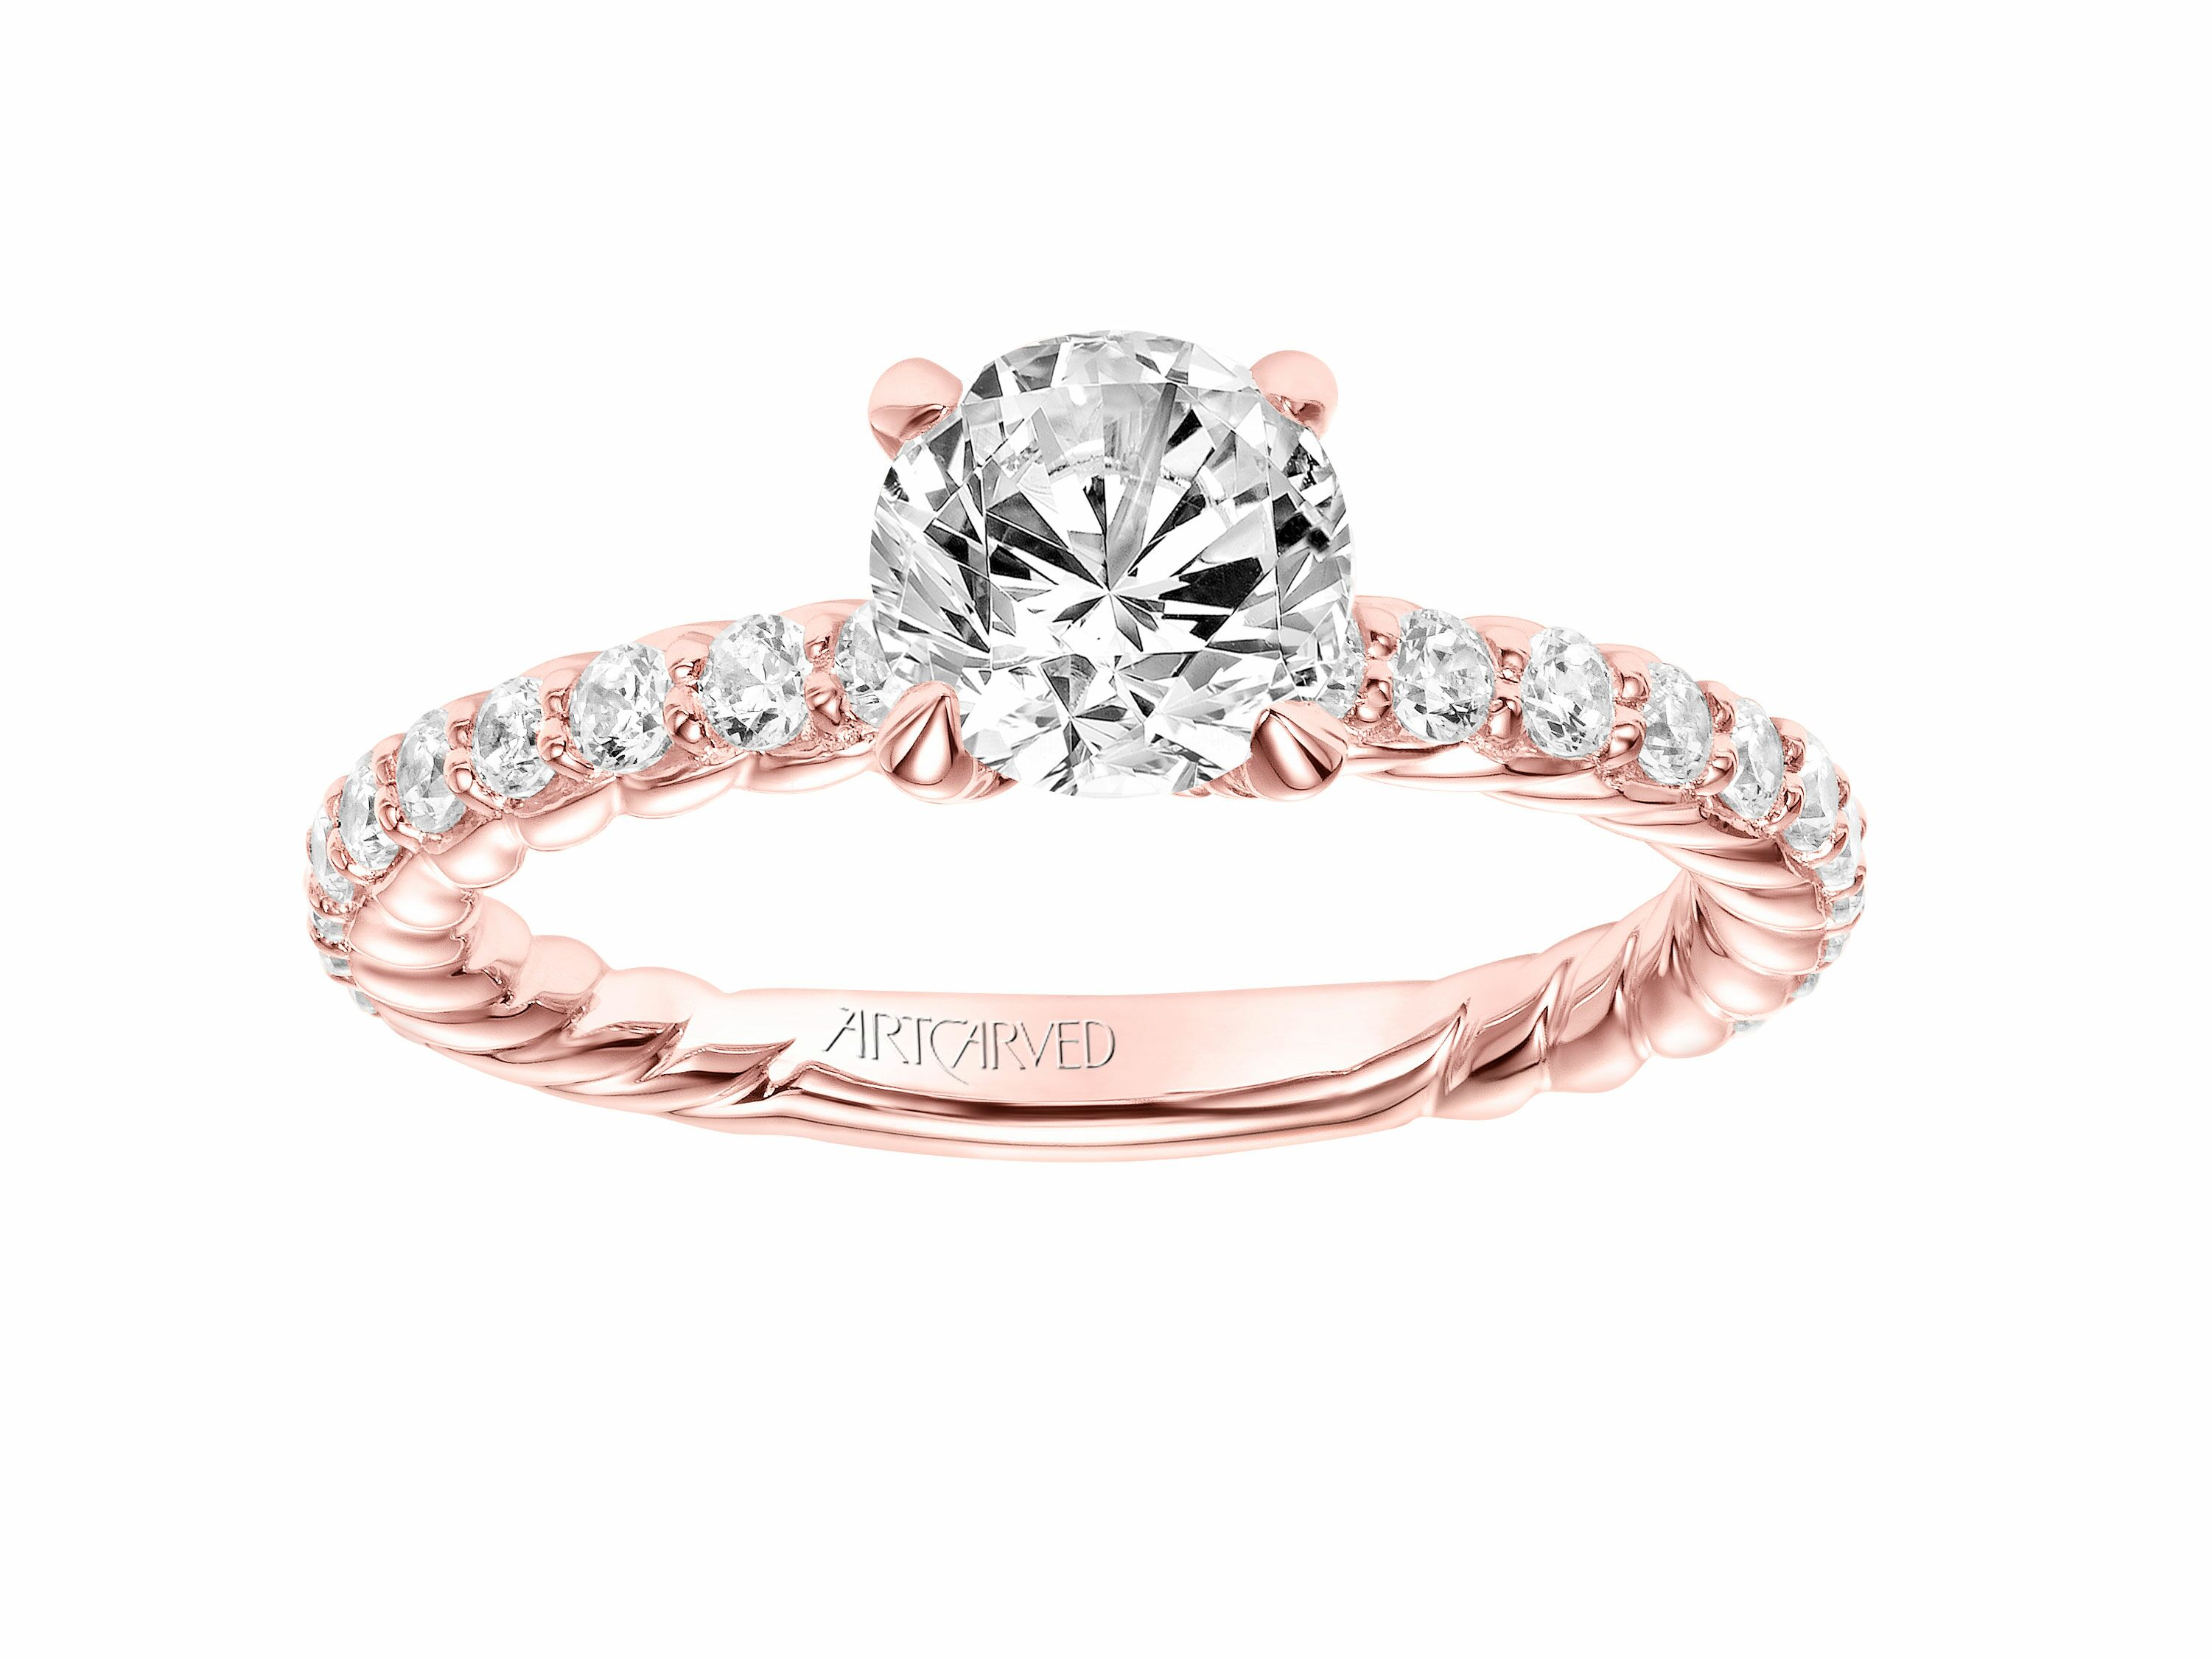 product j tdw ring free rings diamond cushion white gold halo i shipping jewelry band twist overstock twisted engagement watches today